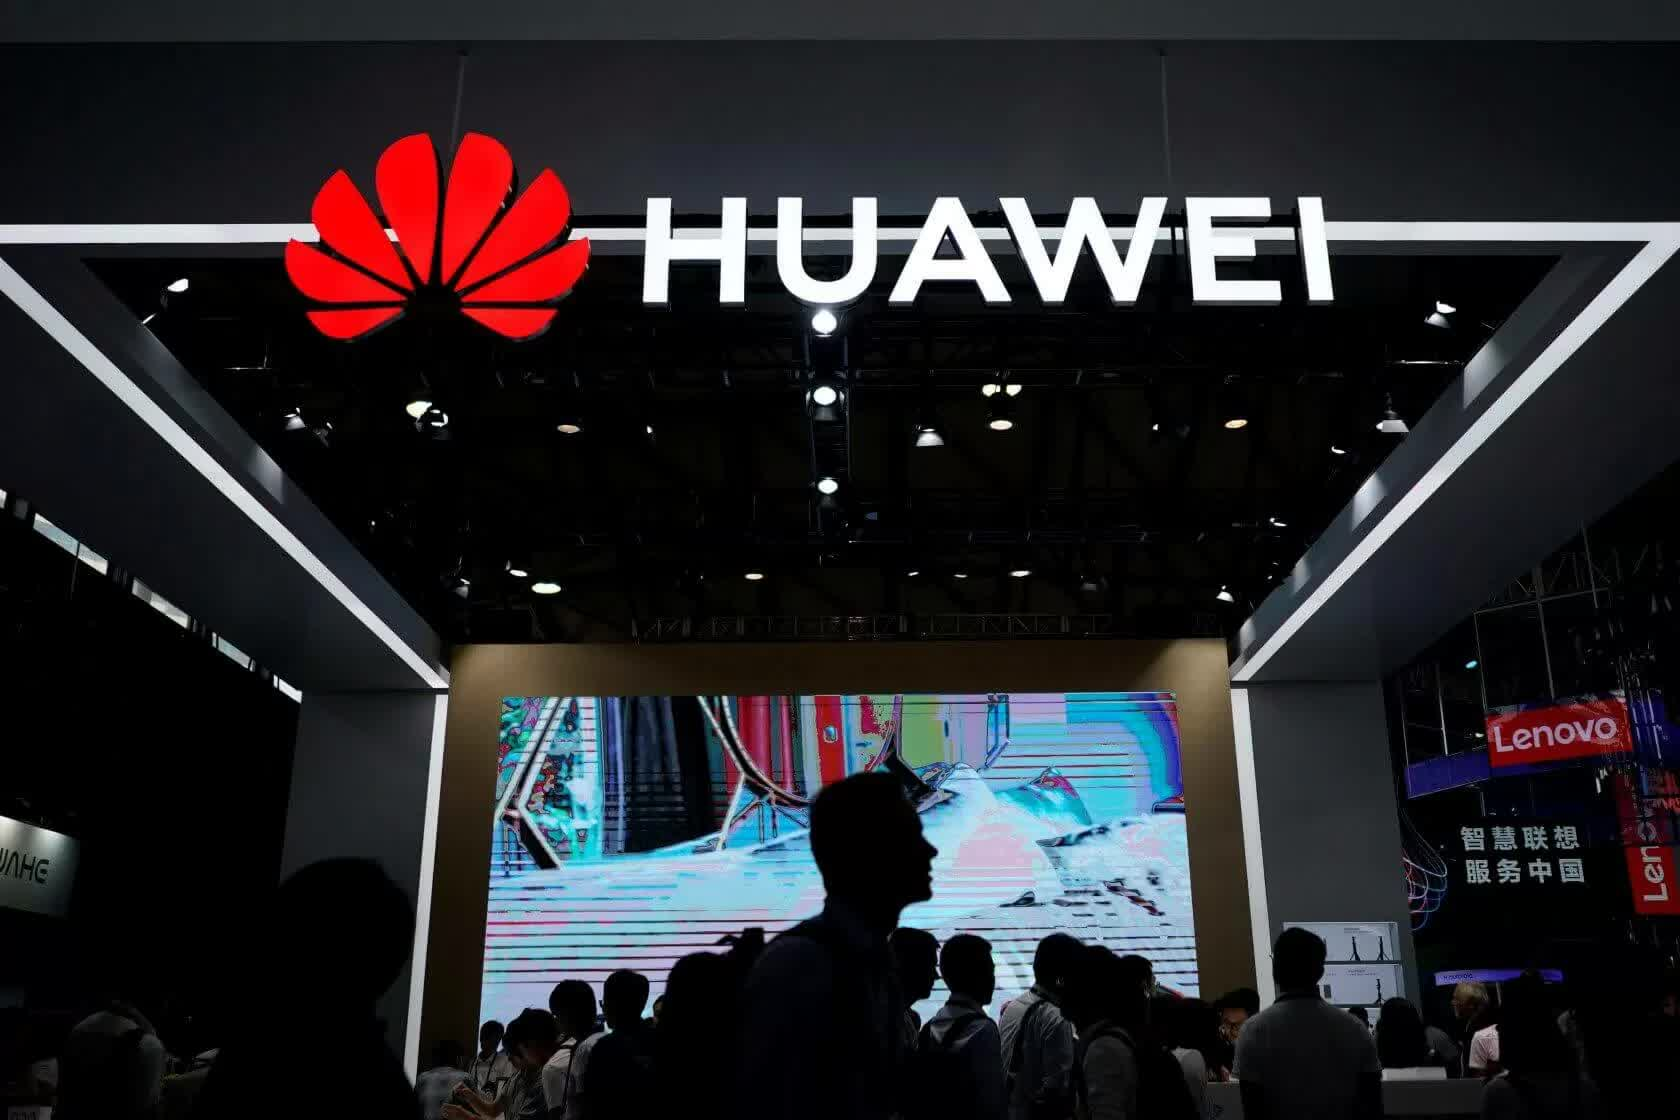 Huawei will start charging competing phone makers for using its 5G patents